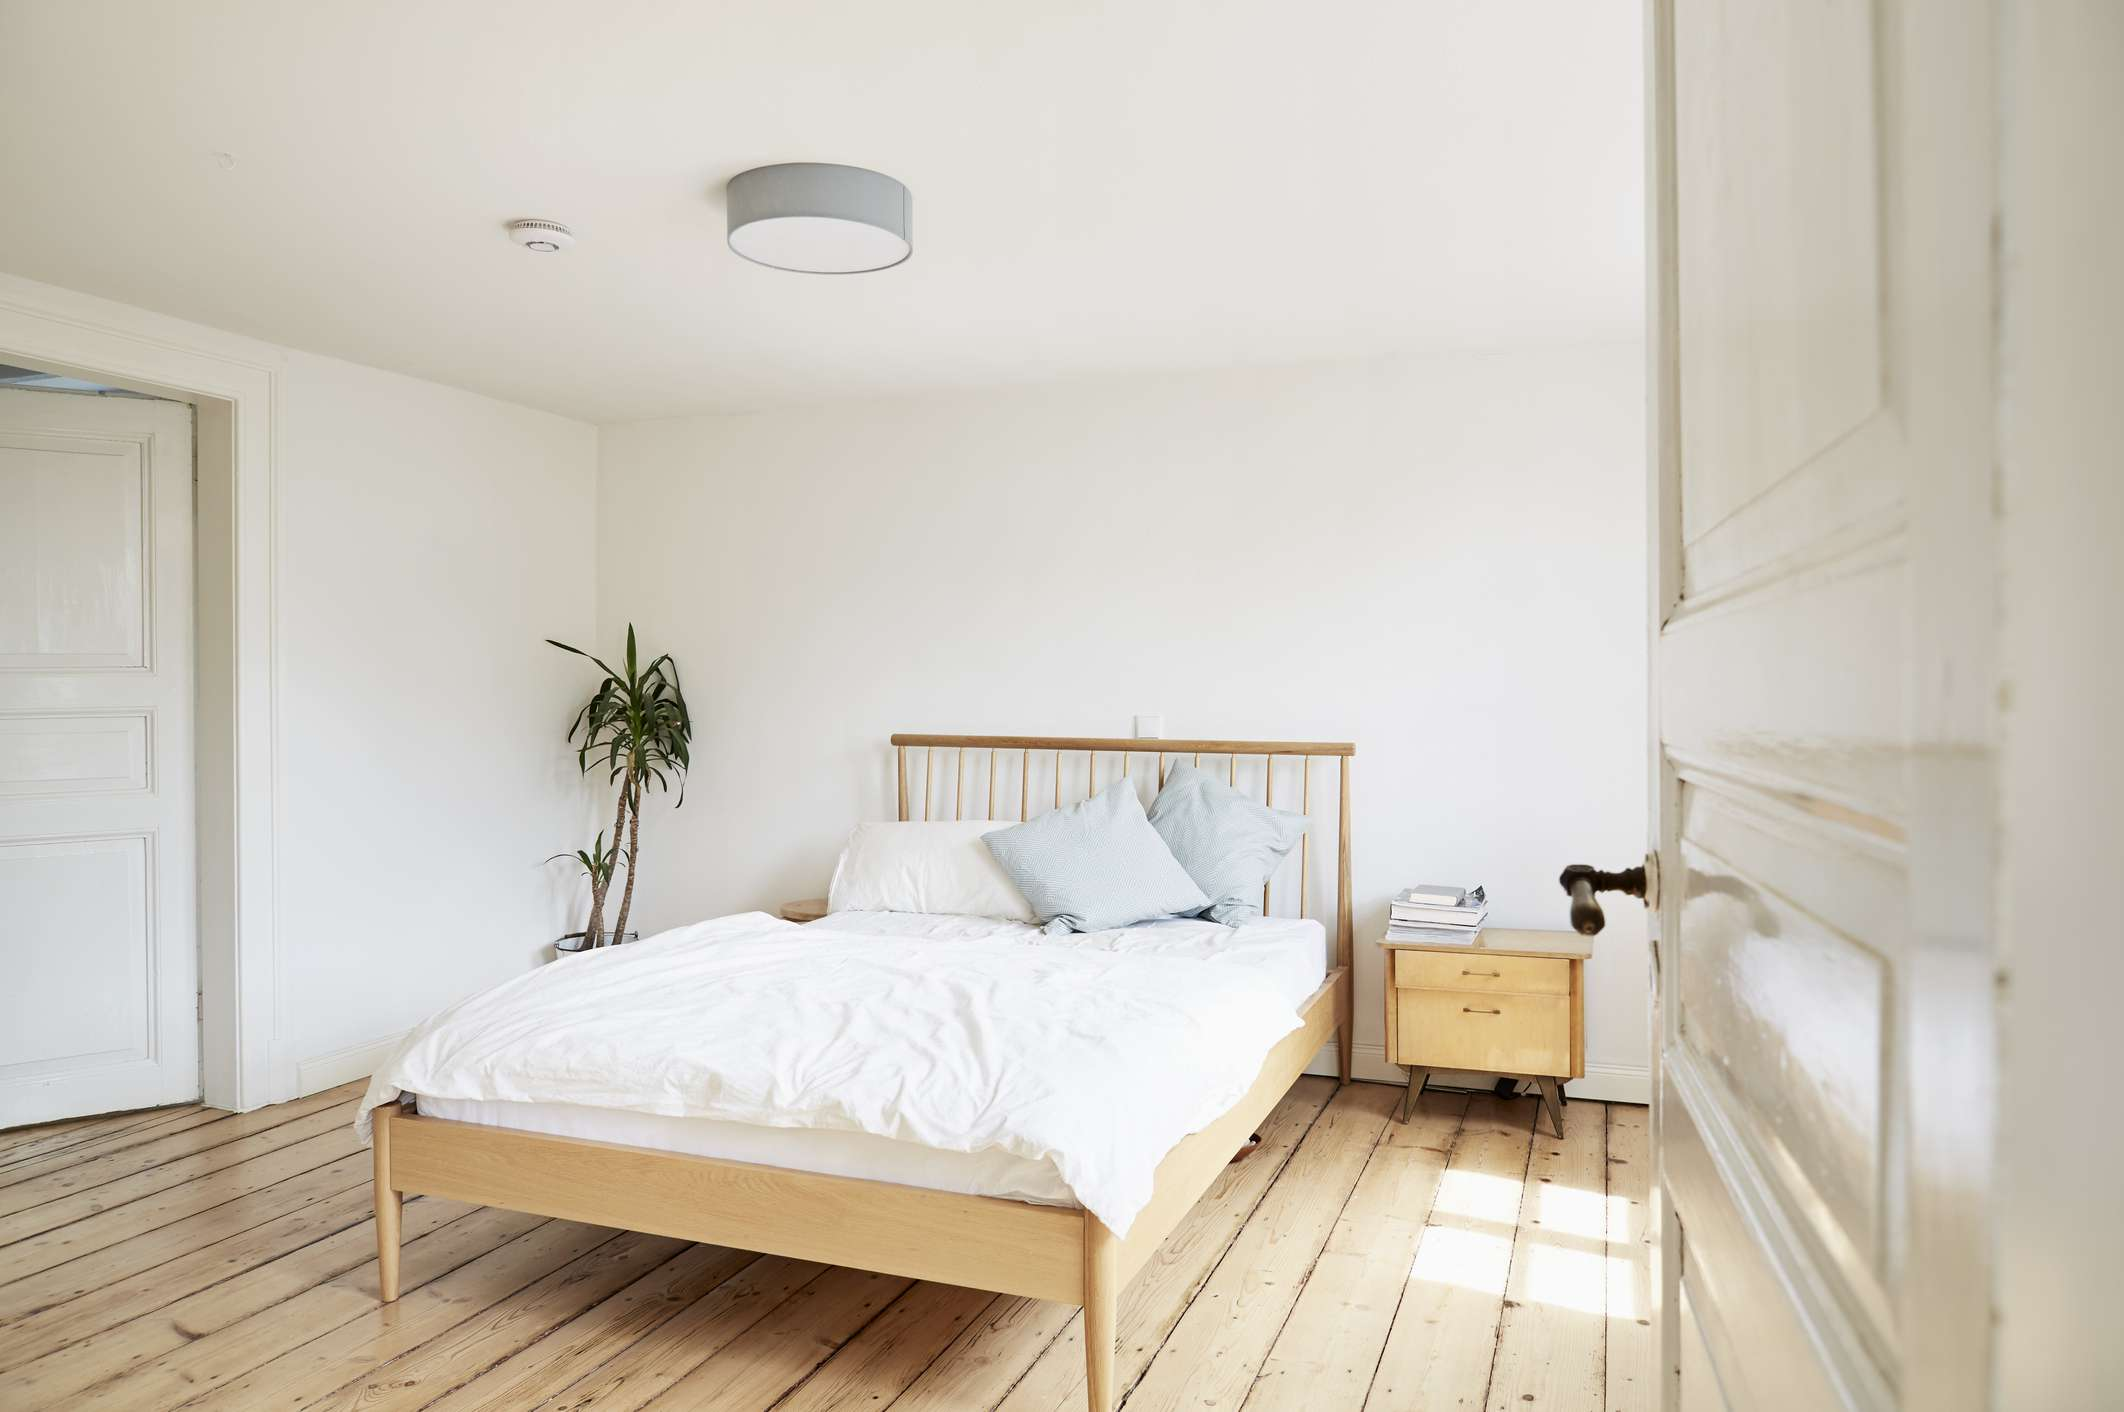 Bright modern bedroom in an old country house, with no storage under the bed